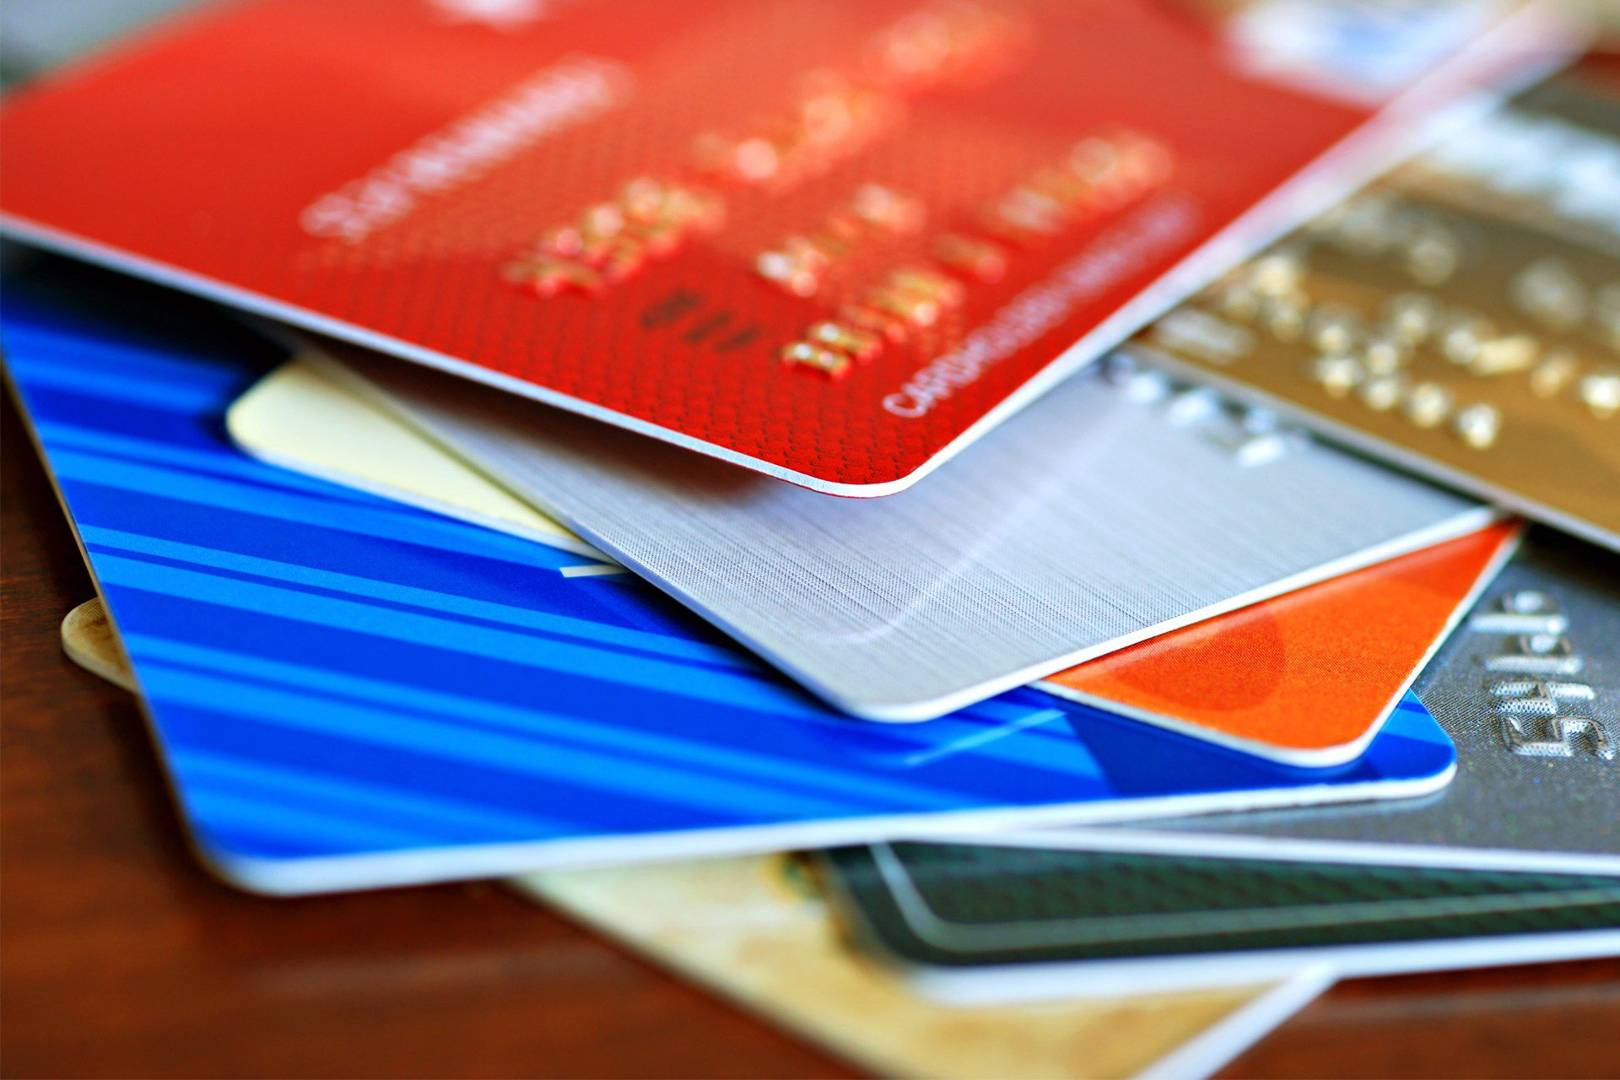 Get clued up on the ten biggest bank card hacks | WIRED UK